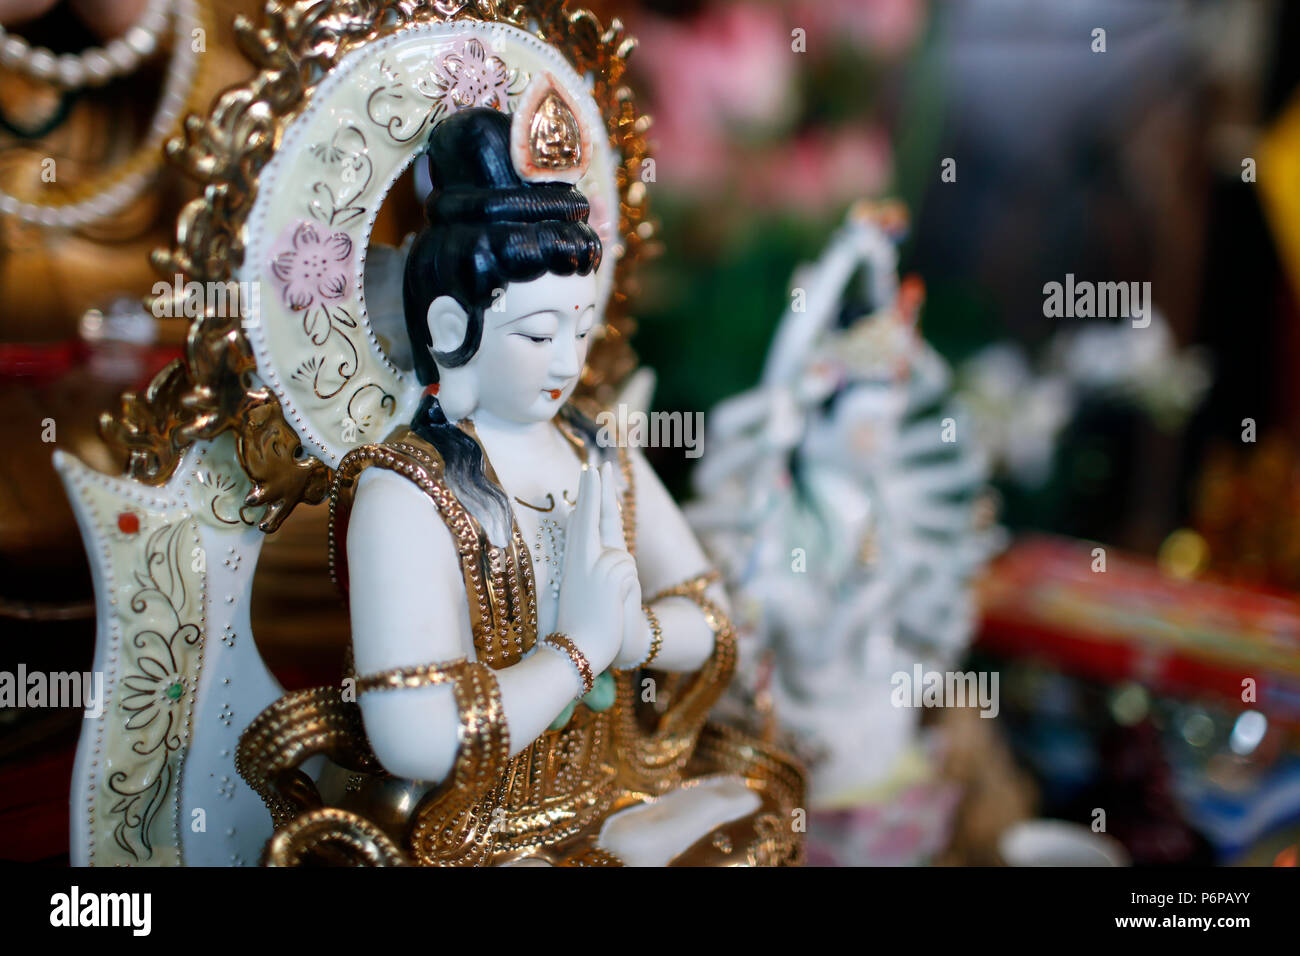 Chua Tu An Buddhist temple. Quan Am bodhisattva of compassion or goddess of Mercy. Saint-Pierre en Faucigny. France. - Stock Image